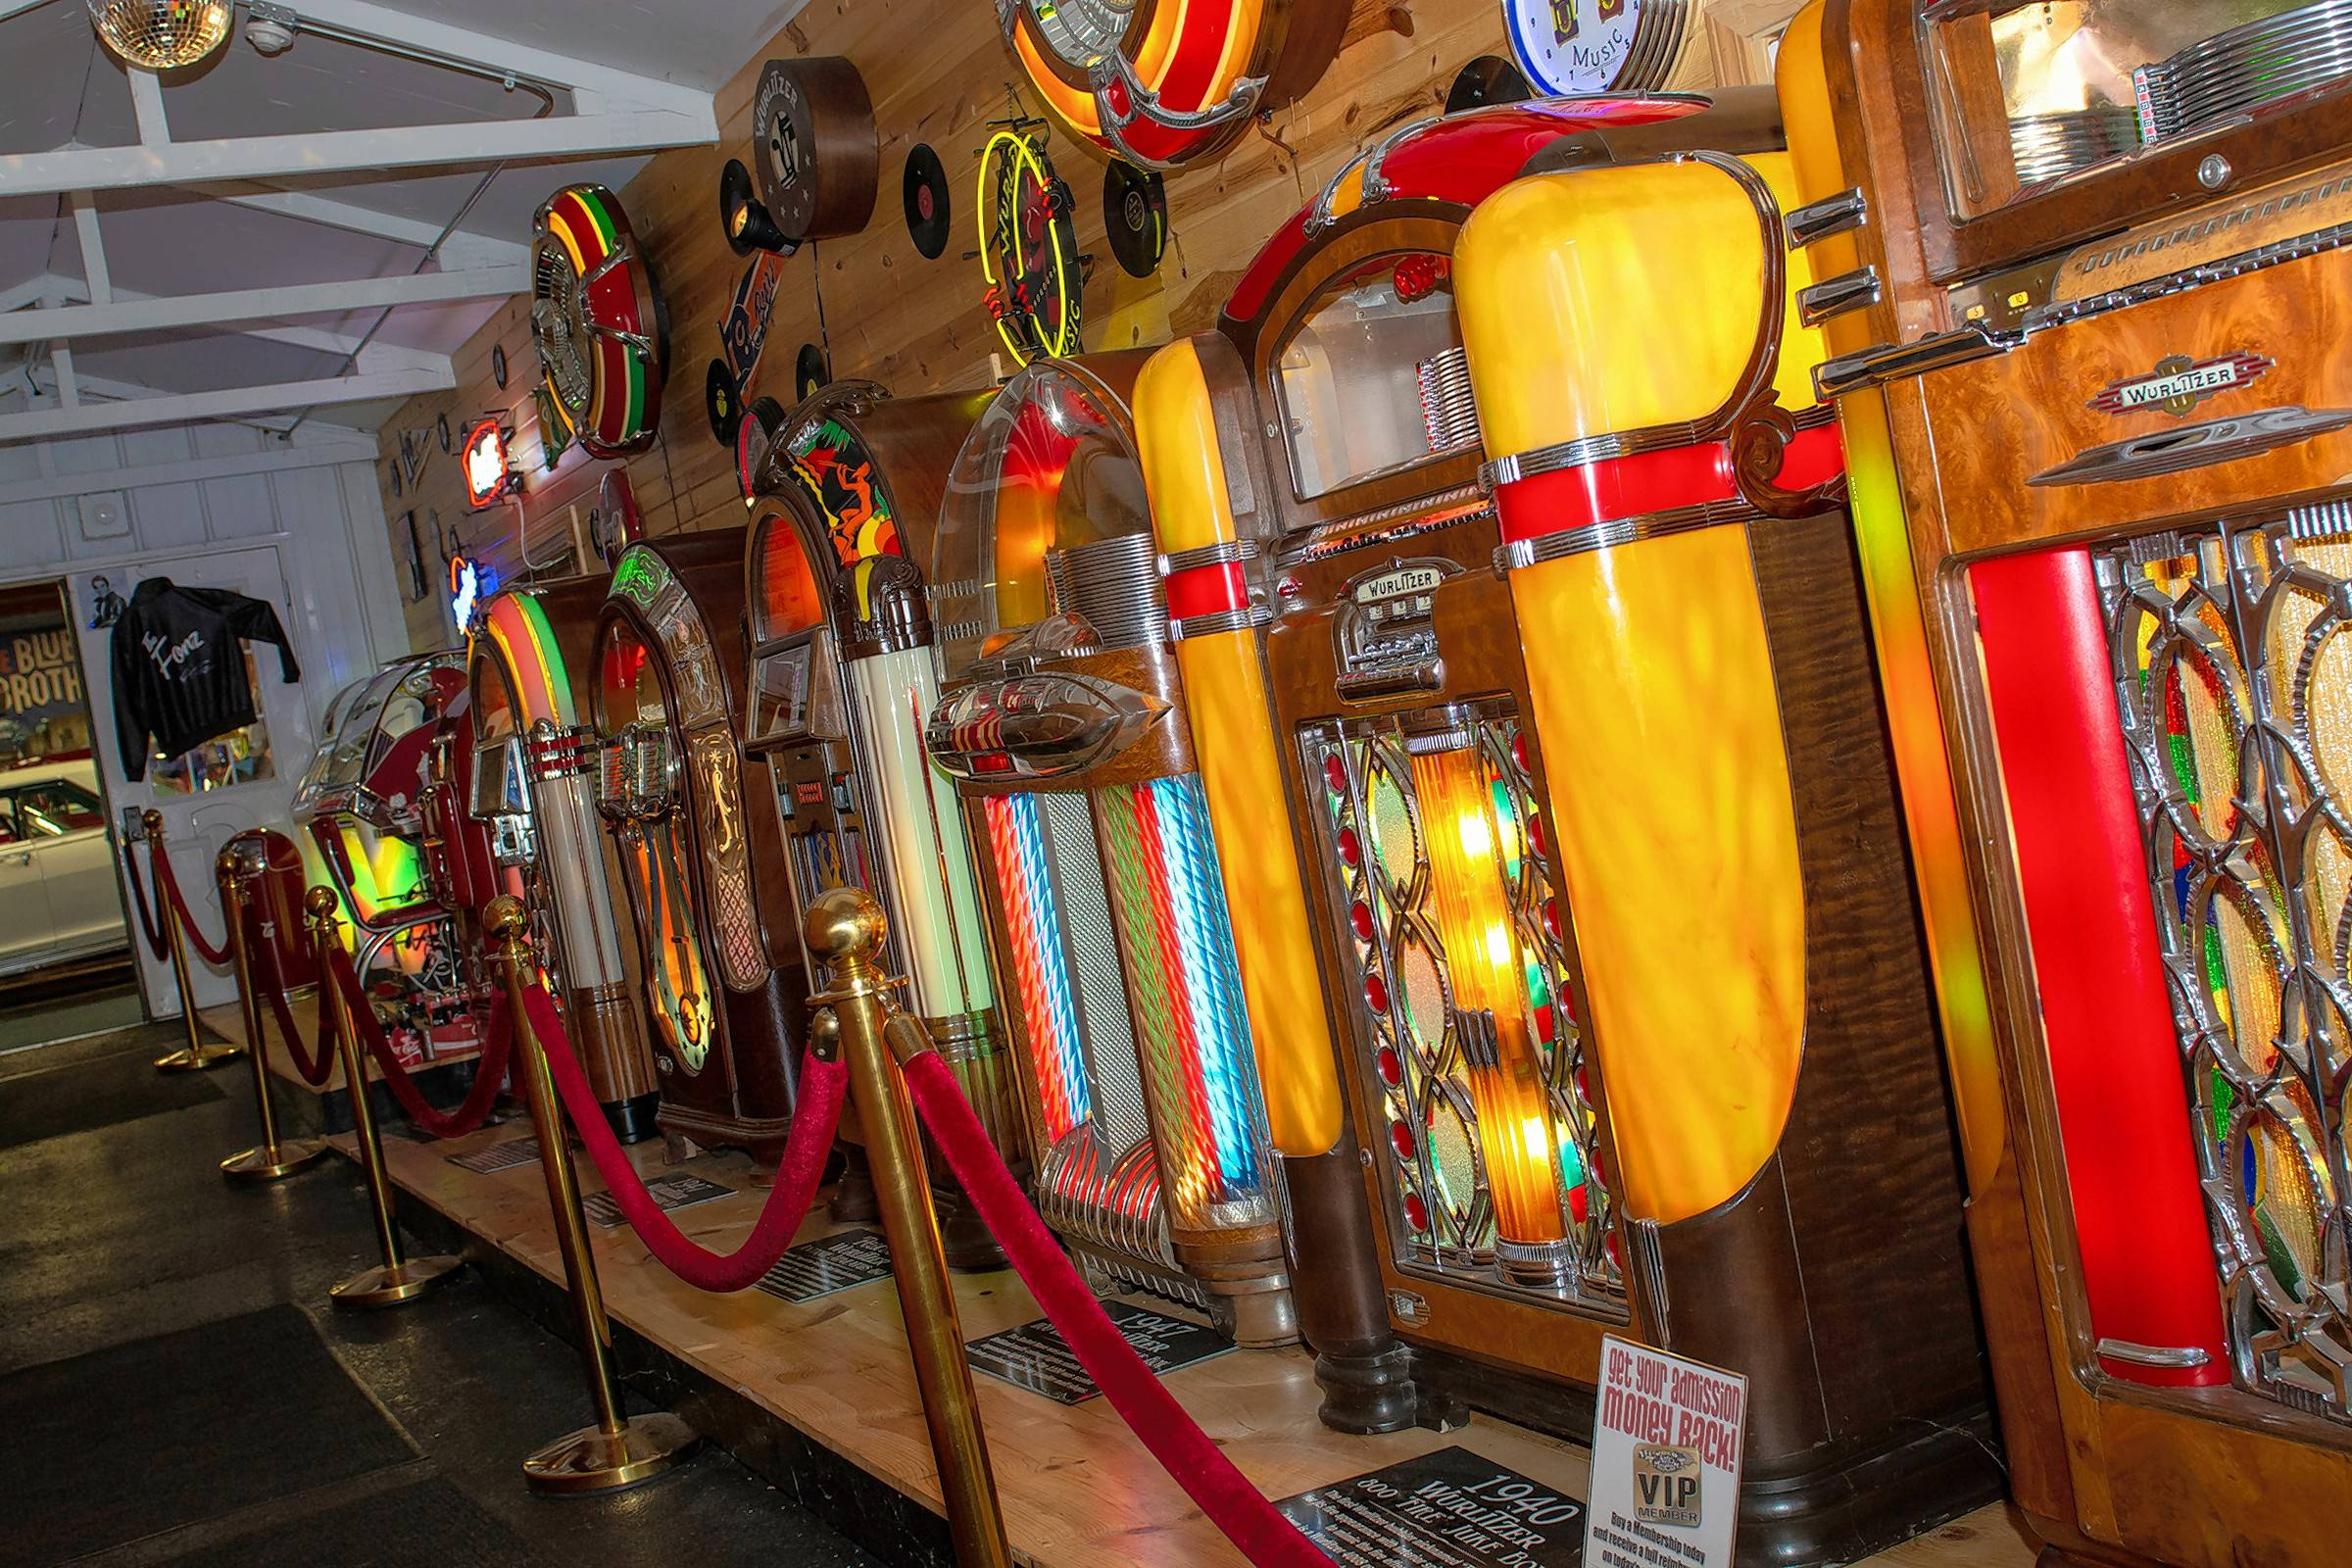 Visitors to the Volo Auto Museum will find a display of vintage jukeboxes.